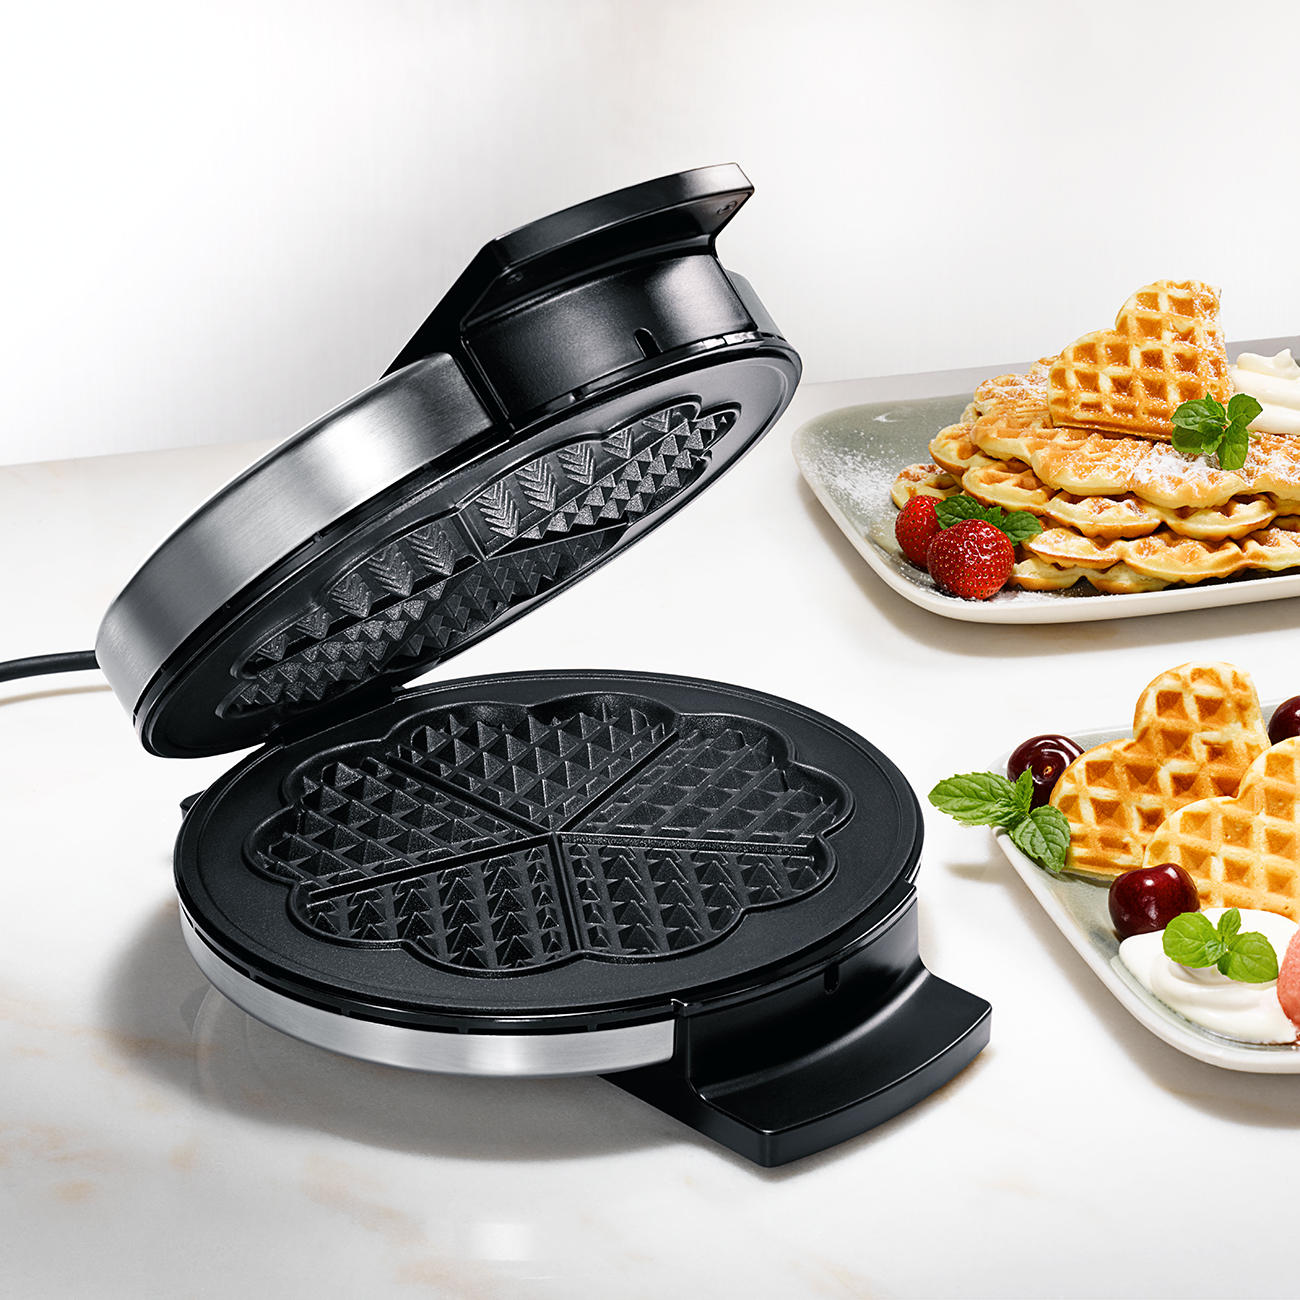 Home Appliances Kitchen Appliances Electric Bakery Equipment Swings Waffle Iron; Waffle Making Machine For Sale Attractive Fashion